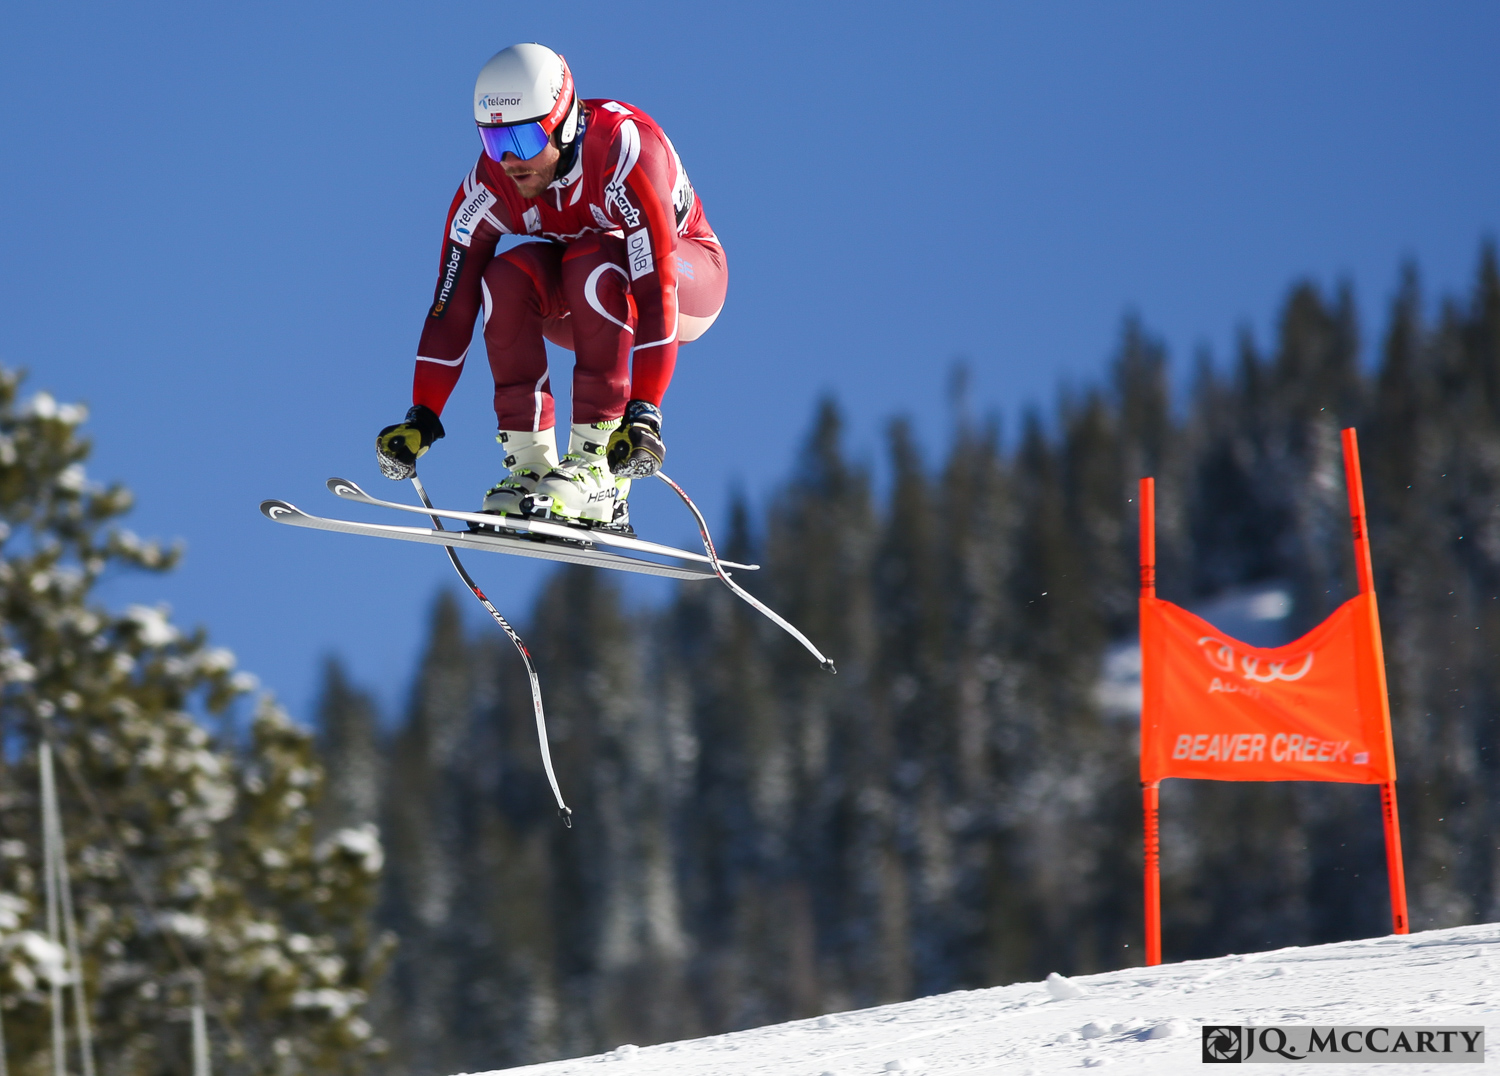 Kjetil Jansrud goes off of the Red Tail jump while racing down the Birds of Prey World Cup ski race course during the first day of downhill training Wednesday in Beaver Creek. Jansrud was the fastest skier of the day with a time of 1 minute, 44.04 seconds.